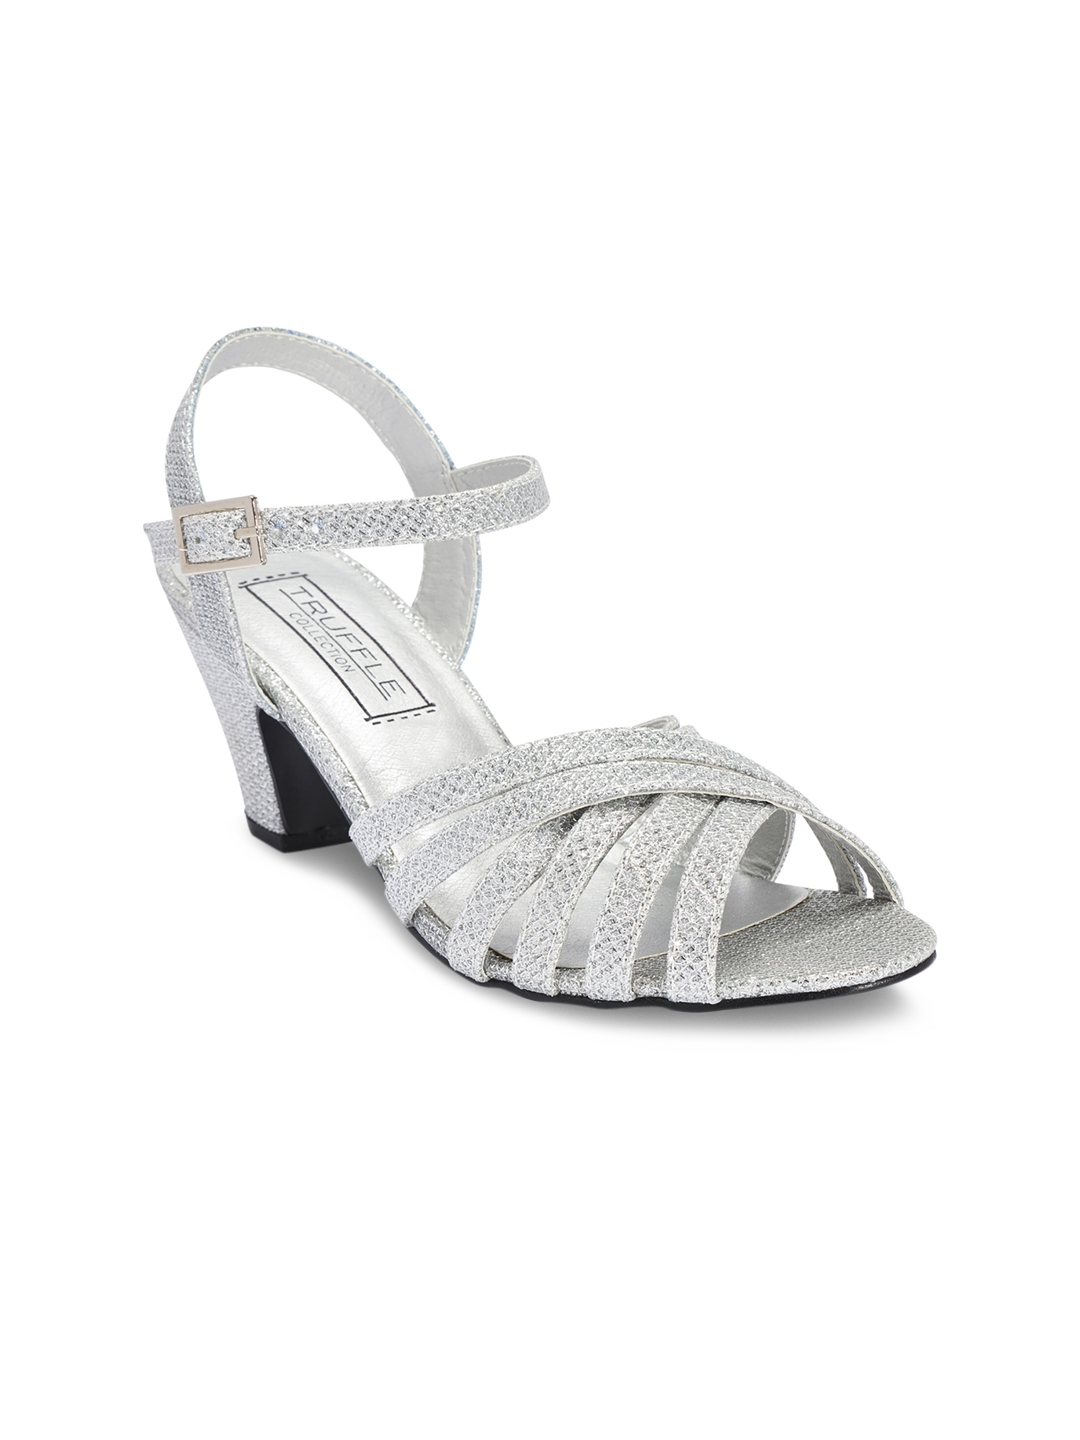 b141045ceb1 Buy Truffle Collection Girls Silver Toned Solid Sandals - Heels for ...